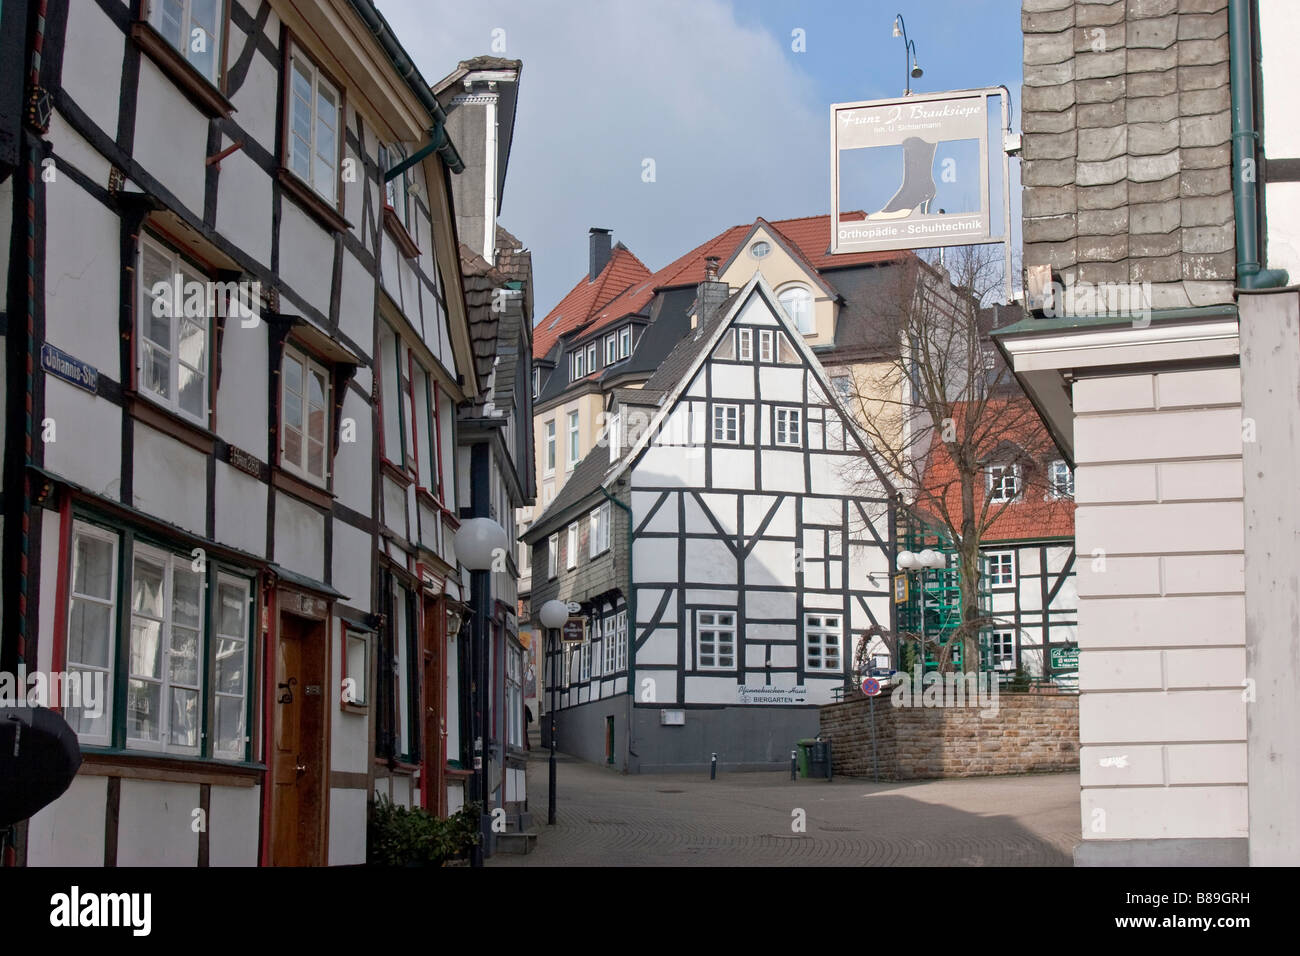 traditional german architecture in the old town of hattingen